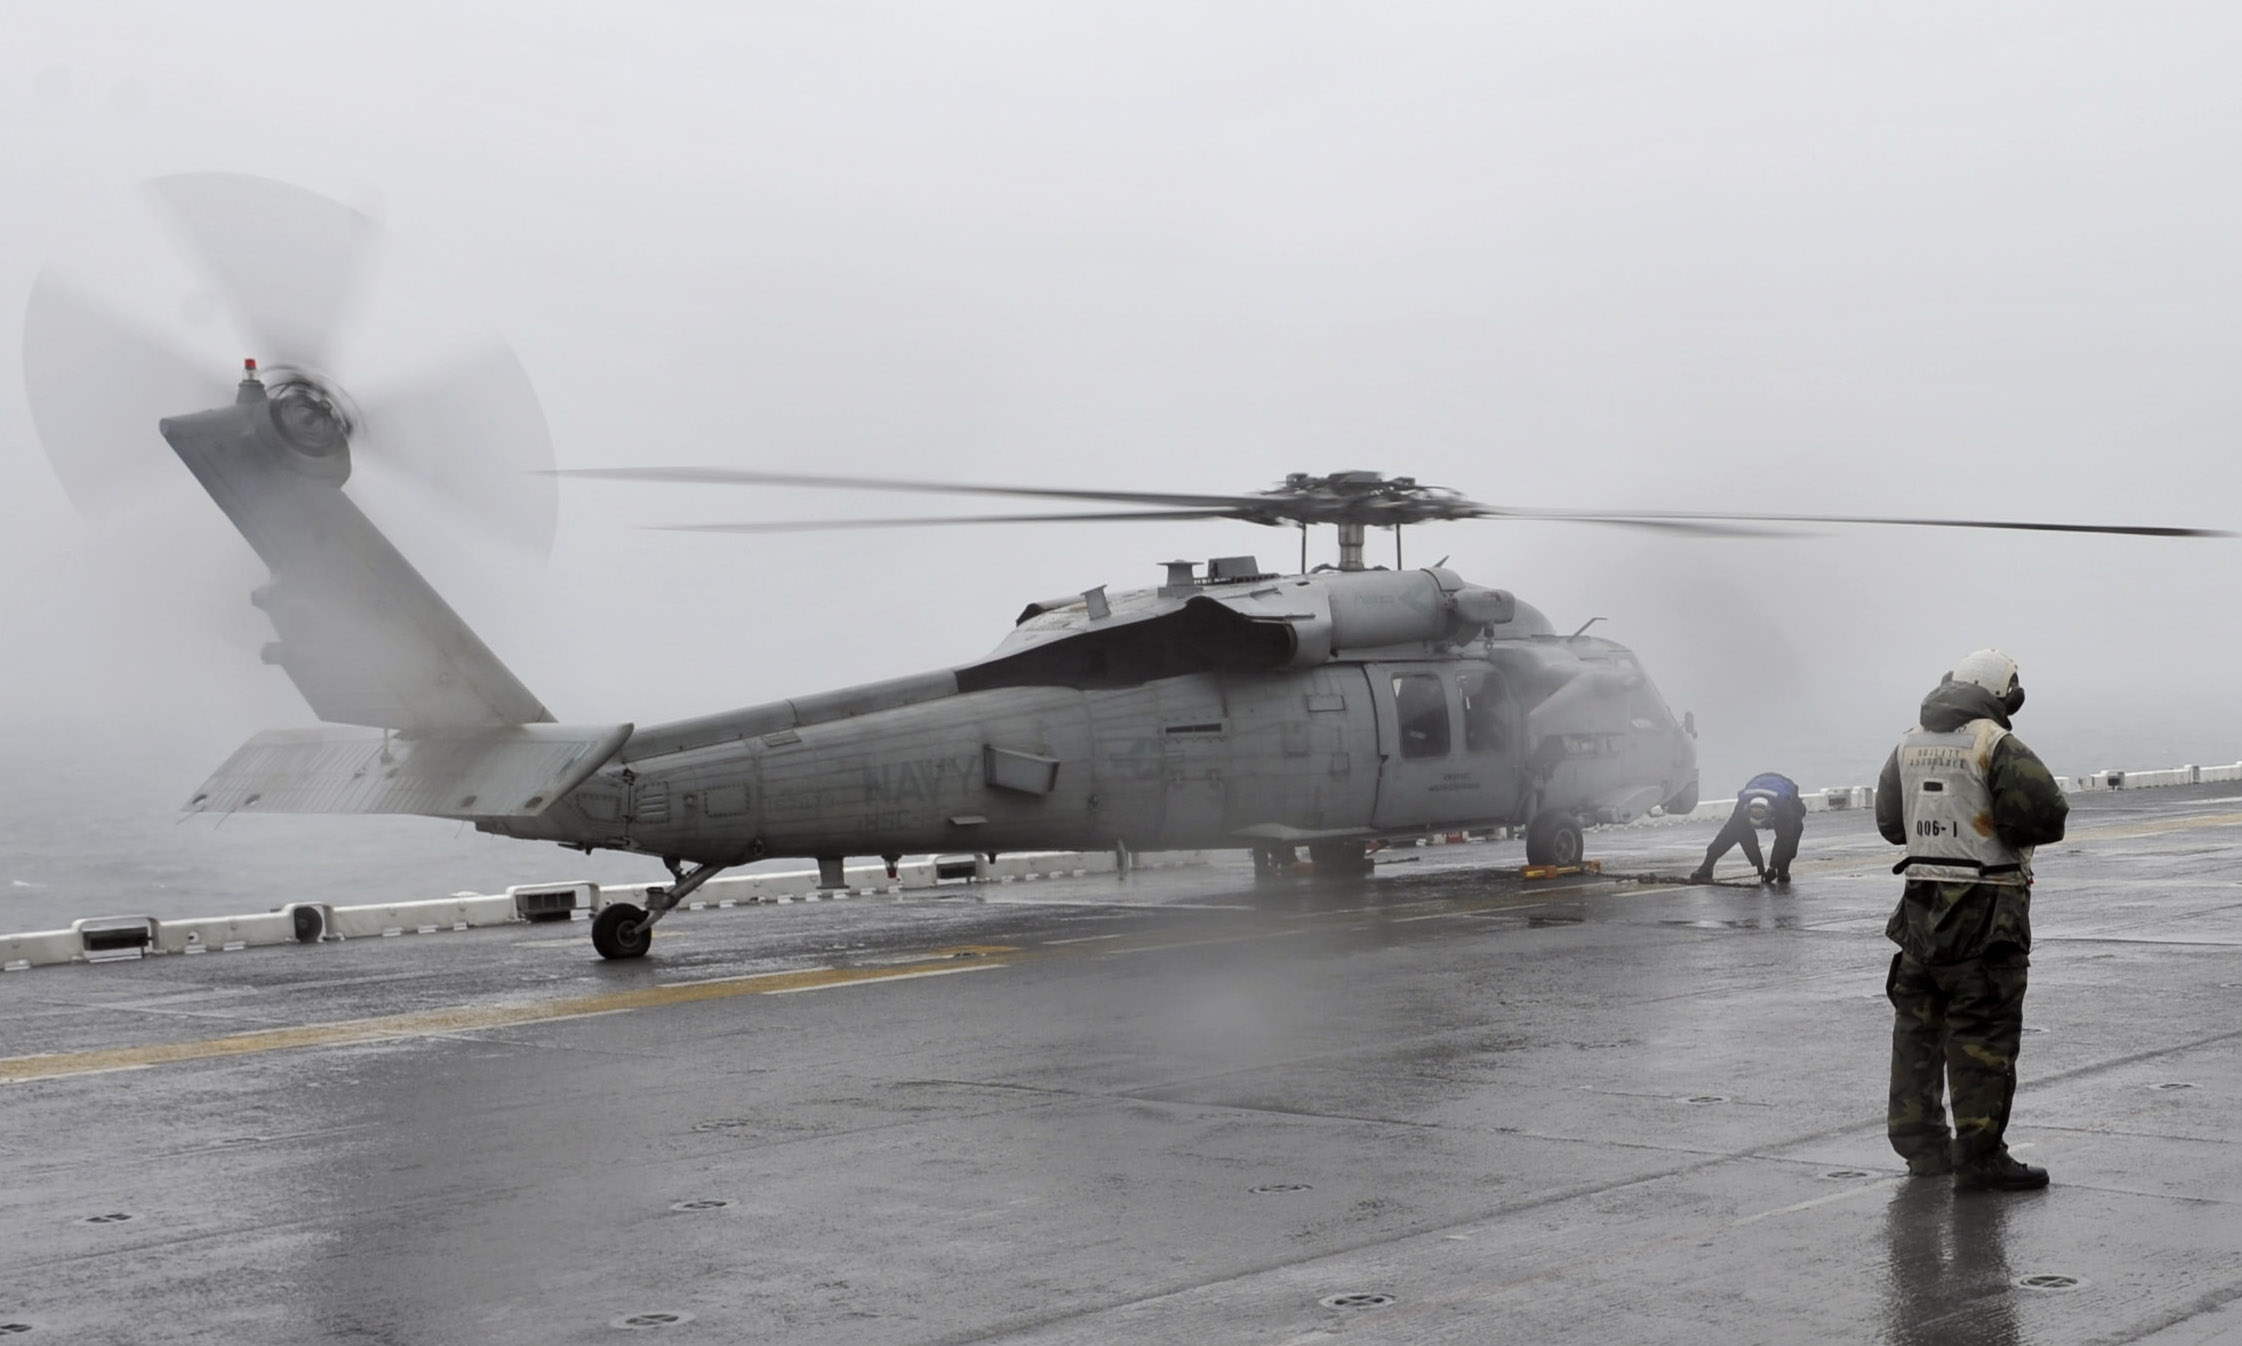 An MH-60S Sea Hawk helicopter assigned to Helicopter Sea Combat Squadron (HSC) 25 is chained to the deck after landing on the flight deck of the forward-deployed amphibious assault ship USS Bonhomme Richard (LHD 6) after conducting search and rescue operations. Sailors and Marines onboard Bonhomme Richard are conducting search and rescue operations as requested by the Republic of Korea. US Navy Photo